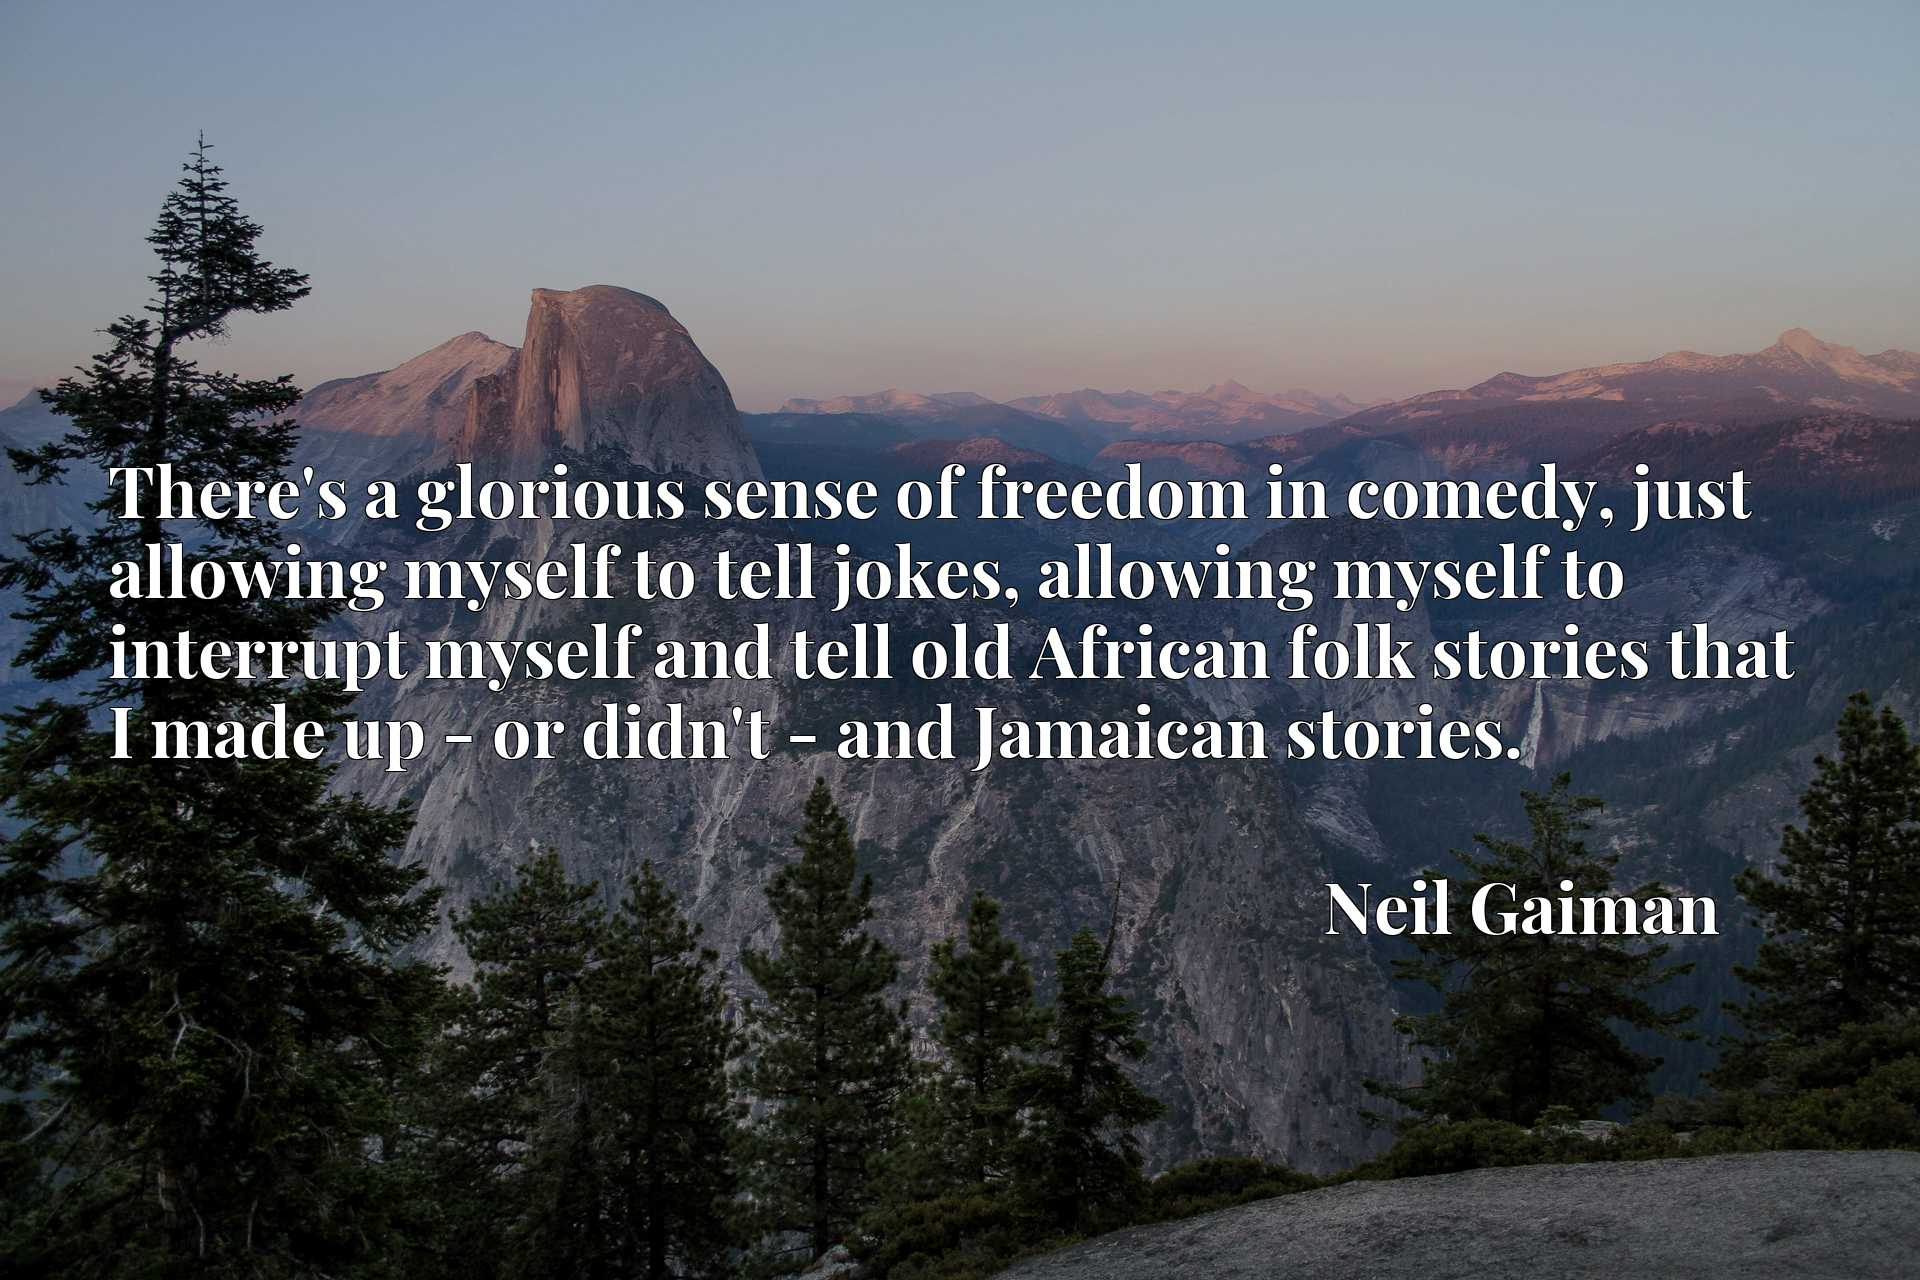 There's a glorious sense of freedom in comedy, just allowing myself to tell jokes, allowing myself to interrupt myself and tell old African folk stories that I made up - or didn't - and Jamaican stories.